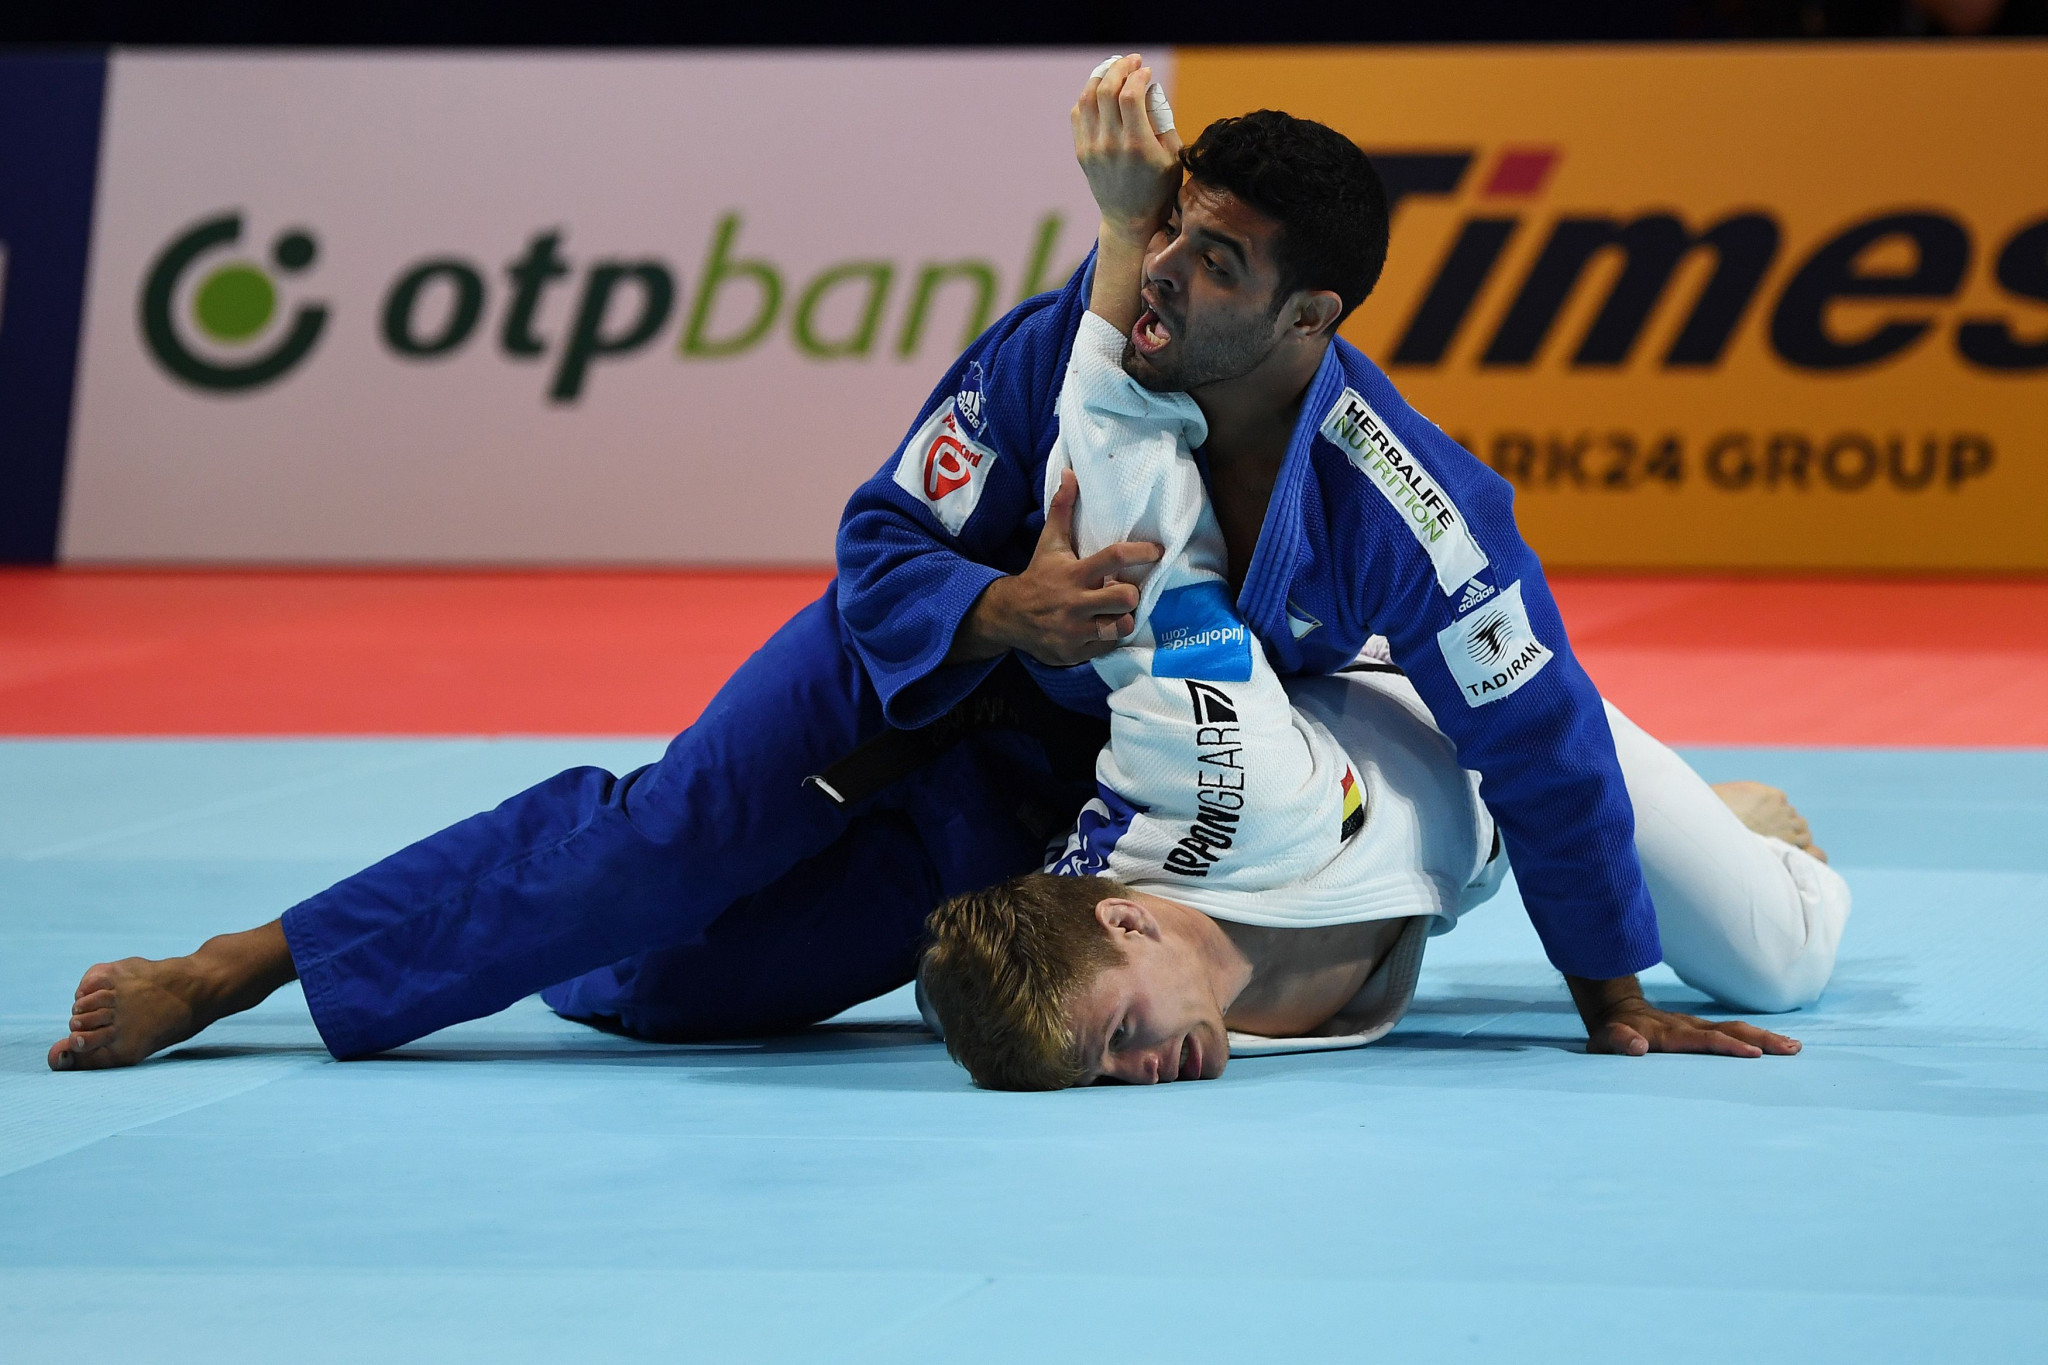 Sagi Muki won his first world title in the men's under-81kg category ©Getty Images